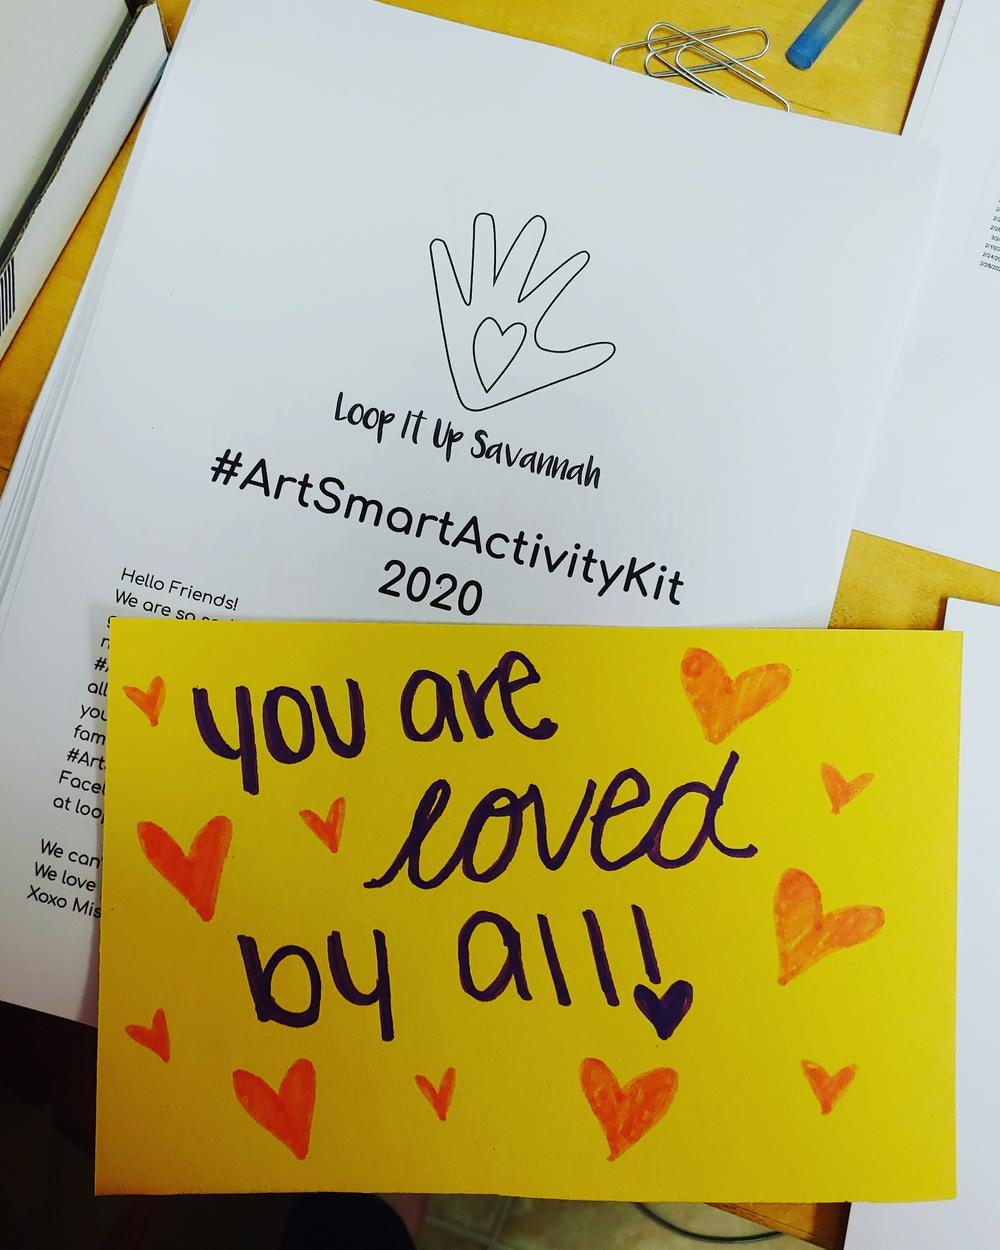 Every #ArtSmartActivityKit includes a personal note from one of the people who helped package the kit.